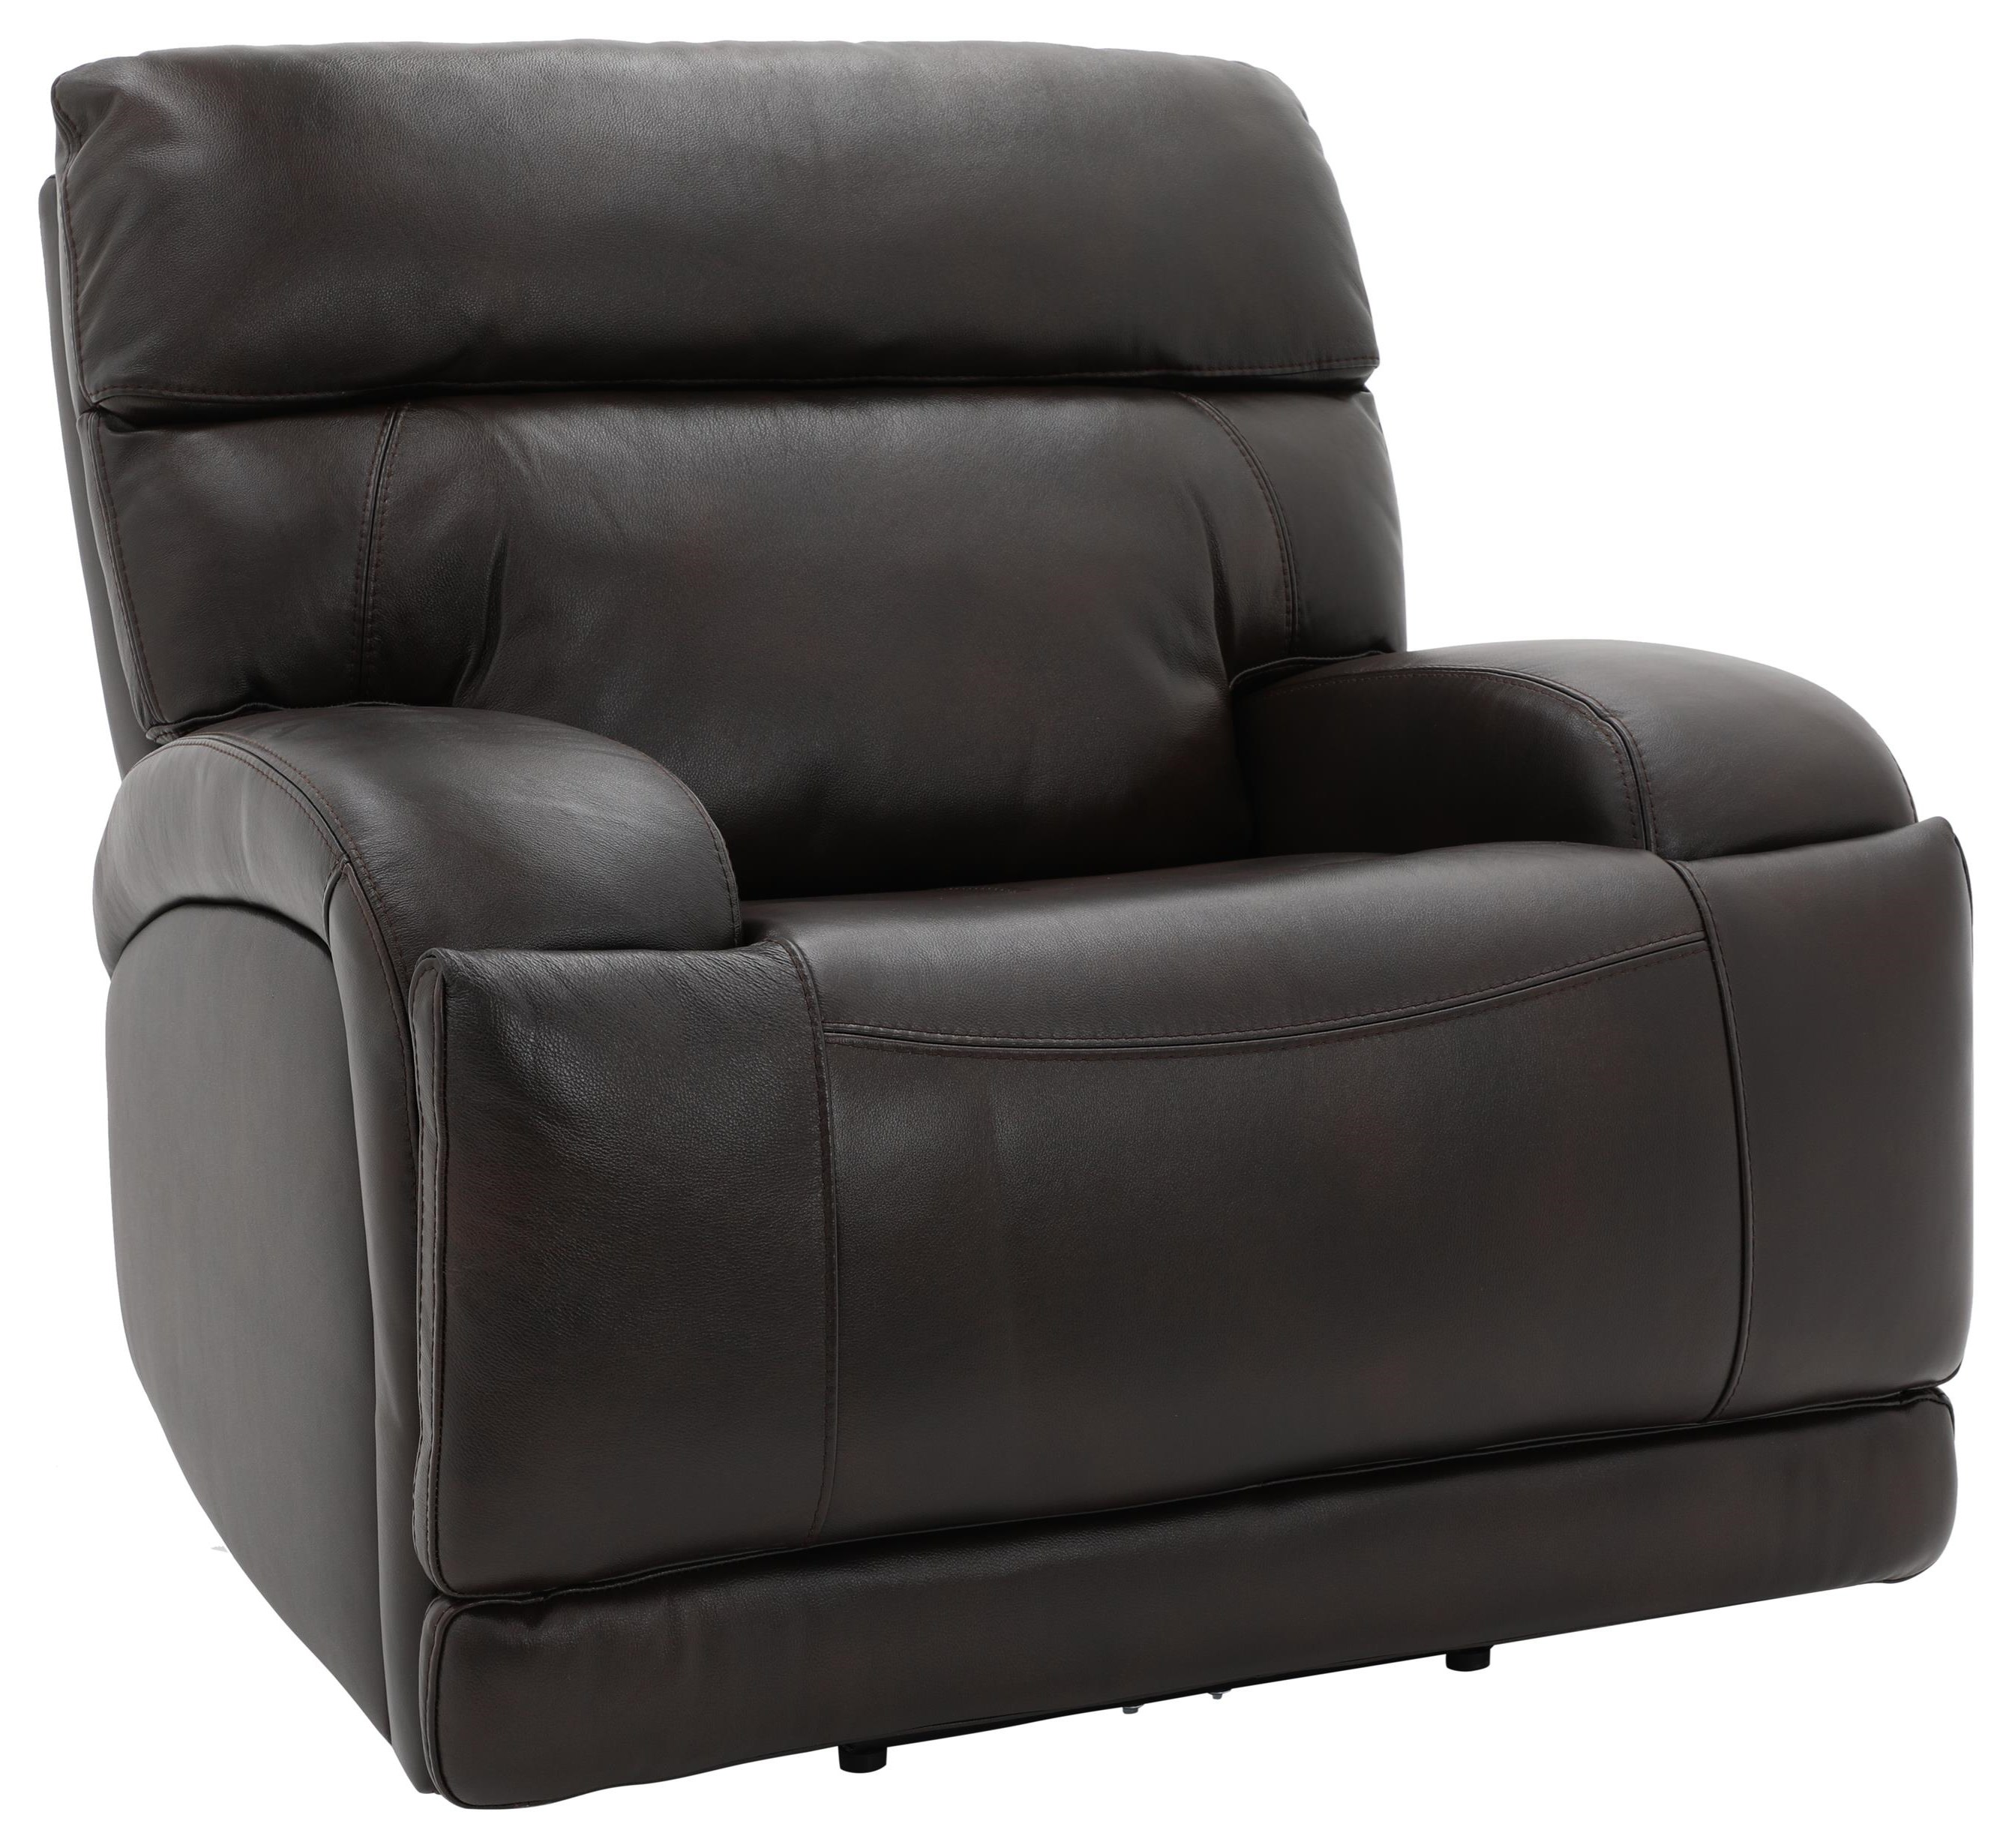 Akron TRIPLE Power Leather Recliner by K.C. at Walker's Furniture